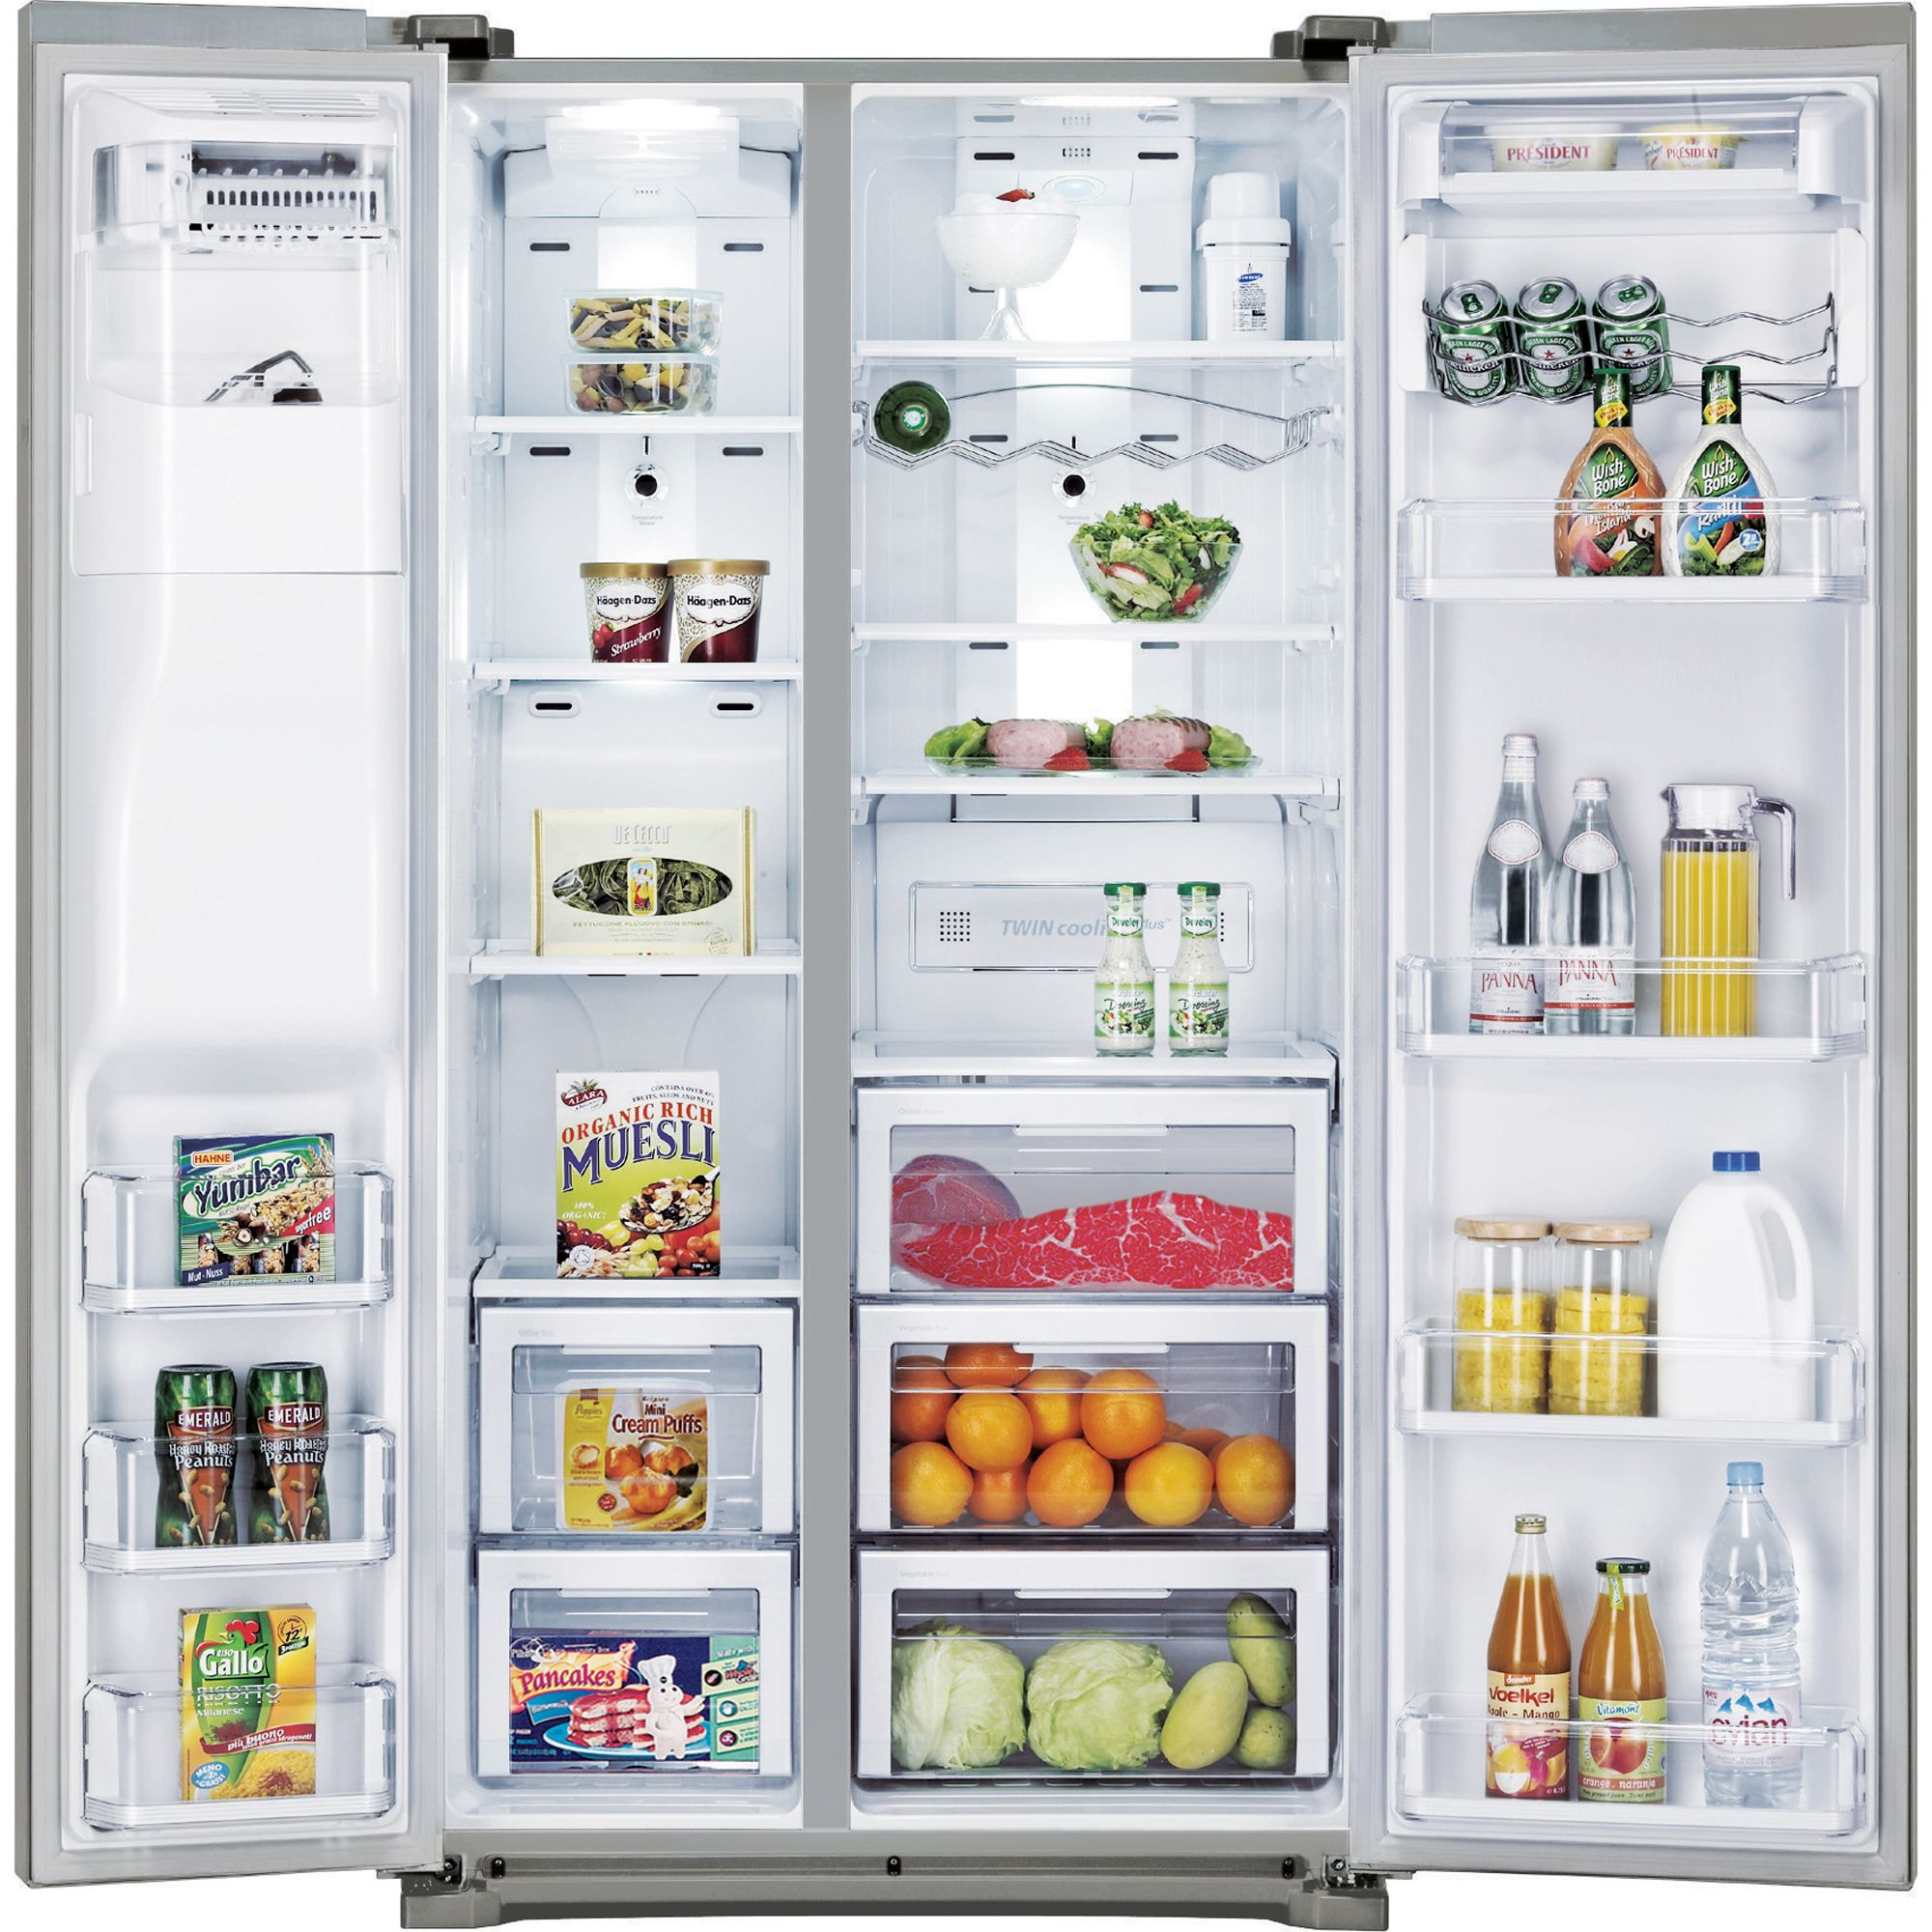 Samsung 24.1 cu. ft. Side-By-Side Refrigerator -Stainless Steel